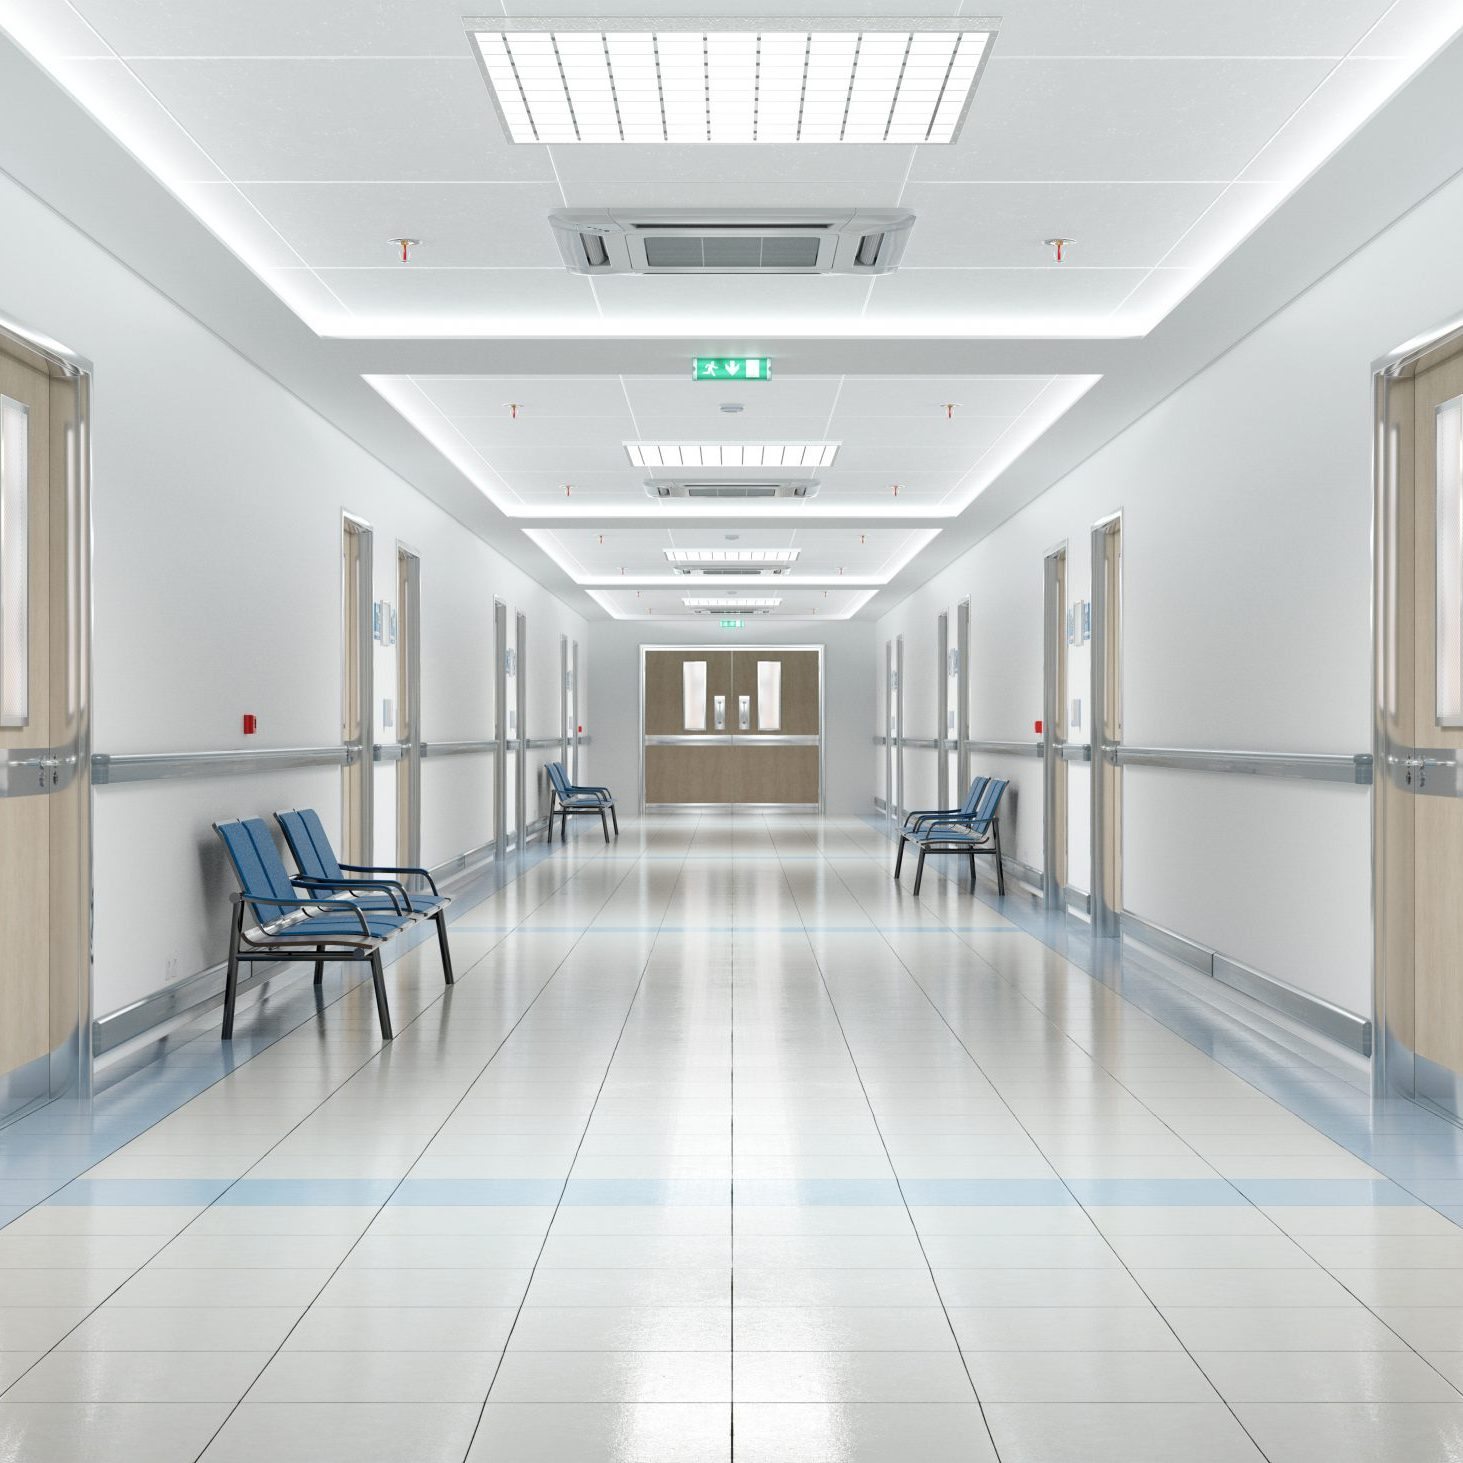 Long hospital bright corridor with rooms and blue seats 3D rendering